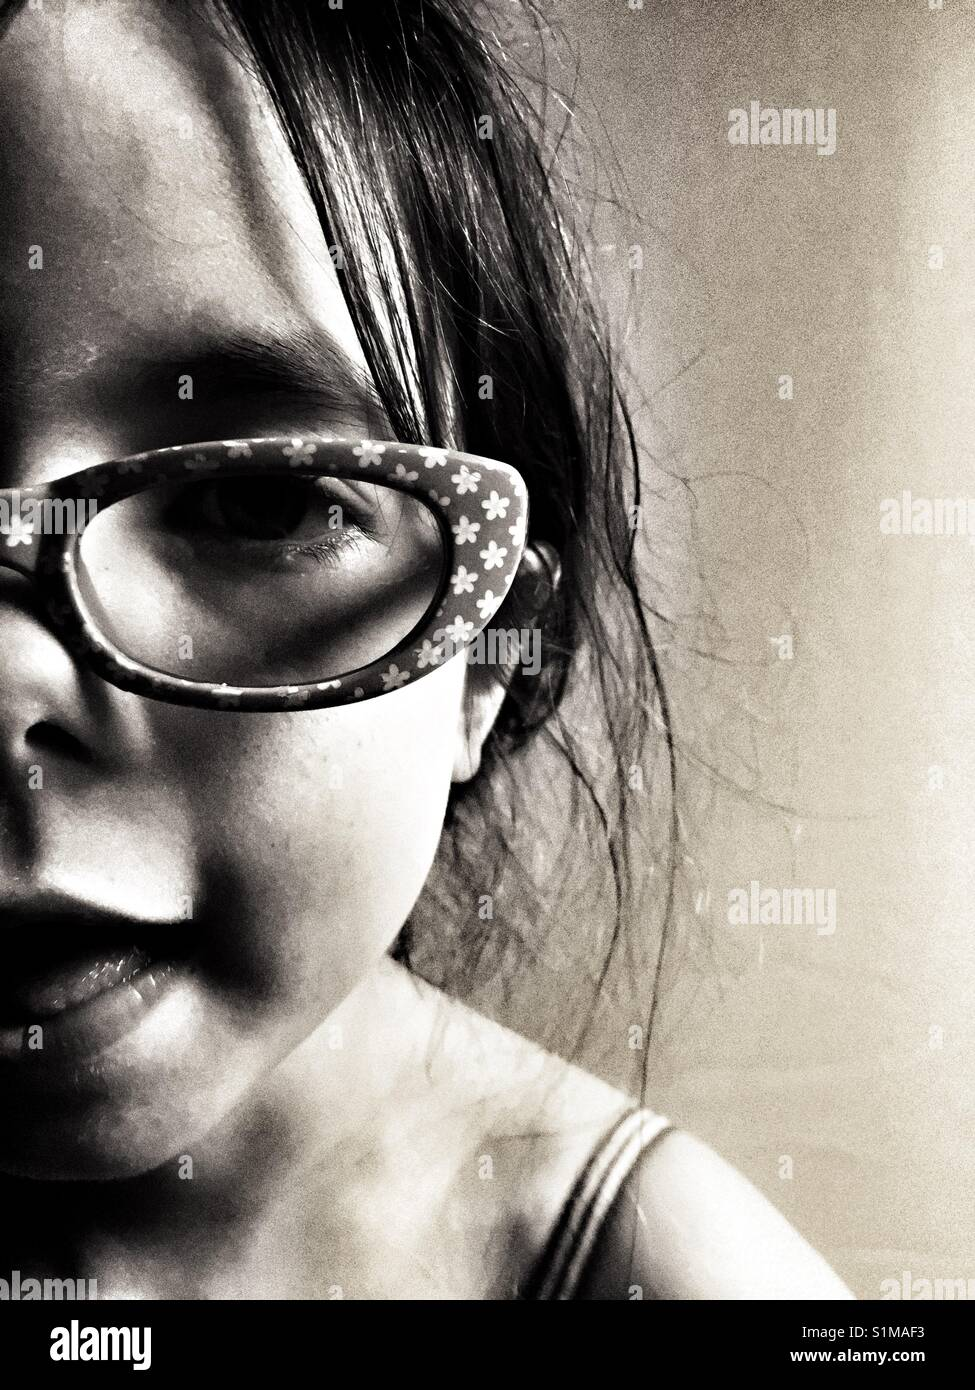 277d3e36fda2 Year Old Girl Wearing Glasses Stock Photos & Year Old Girl Wearing ...